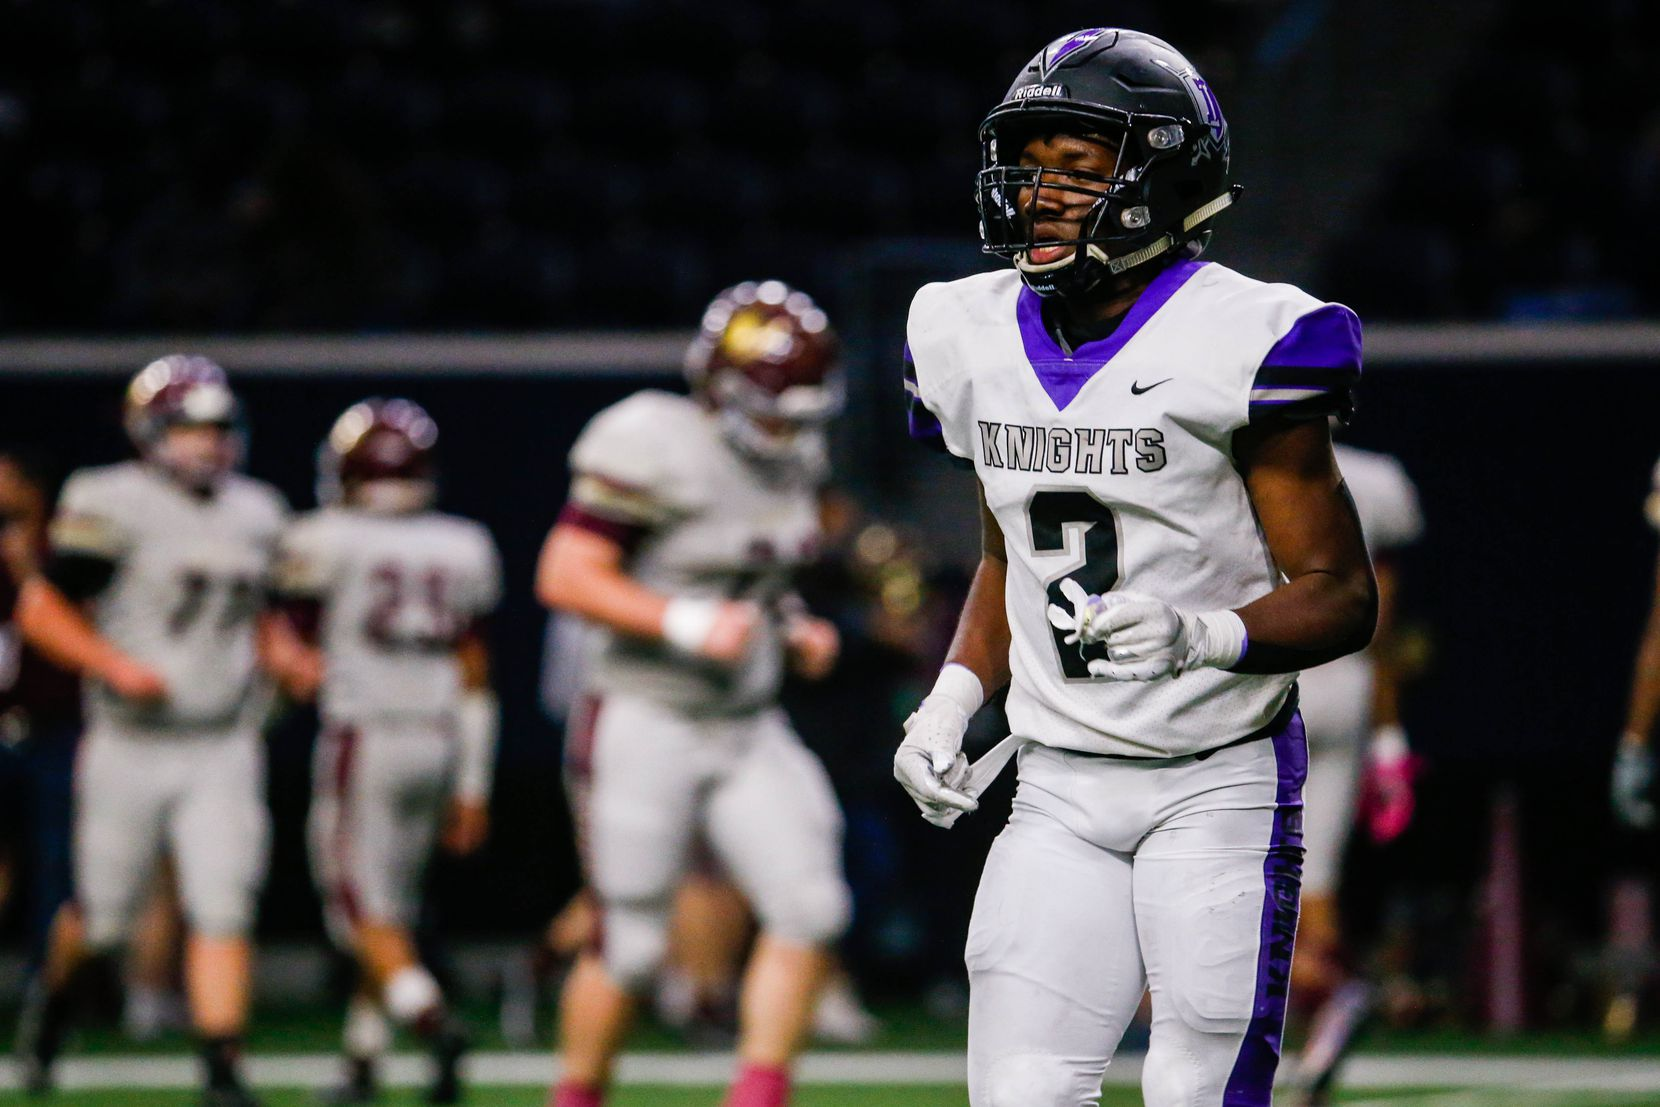 Frisco Independence's Zhighlil Mcmillan (2) runs off the field after a play against Frisco Heritage during the second half of a game at the Ford Center at the Star in Frisco on Thursday, Dec. 3, 2020. (Juan Figueroa/ The Dallas Morning News)